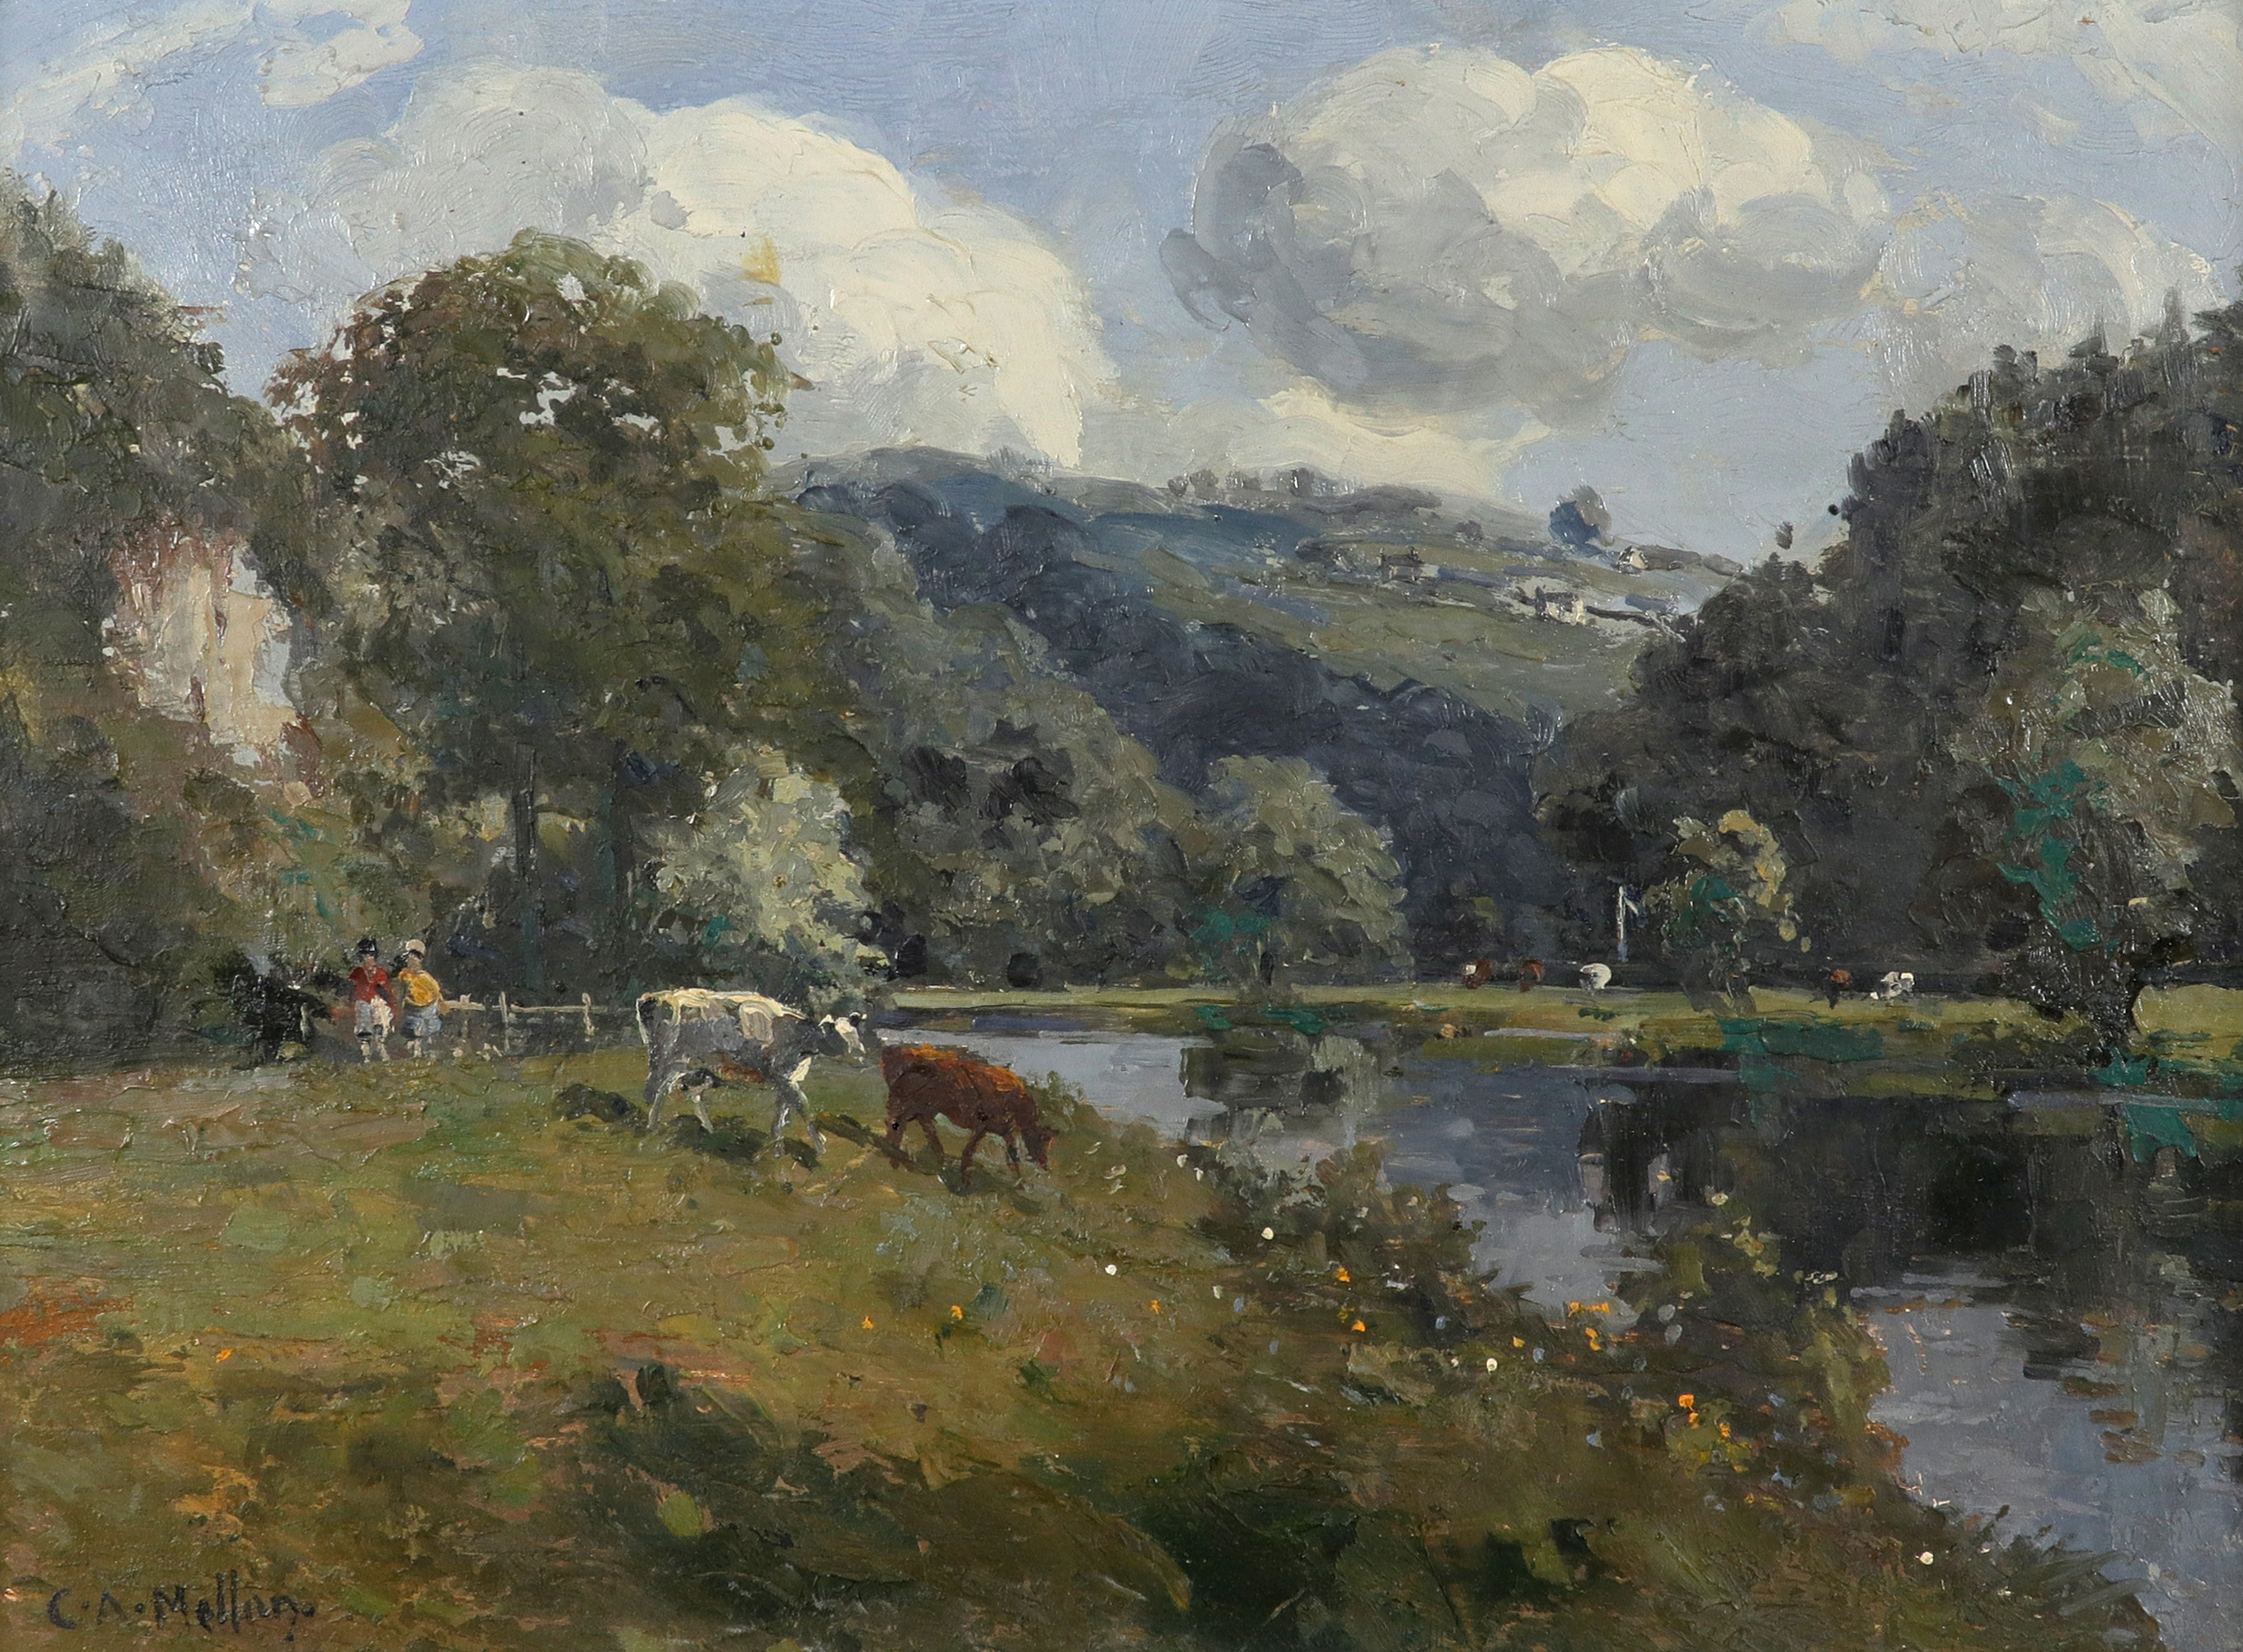 ‡Campbell Archibald Mellon (1876-1955) The River Wye Signed C.A.Mellon. (lower left) Oil on board